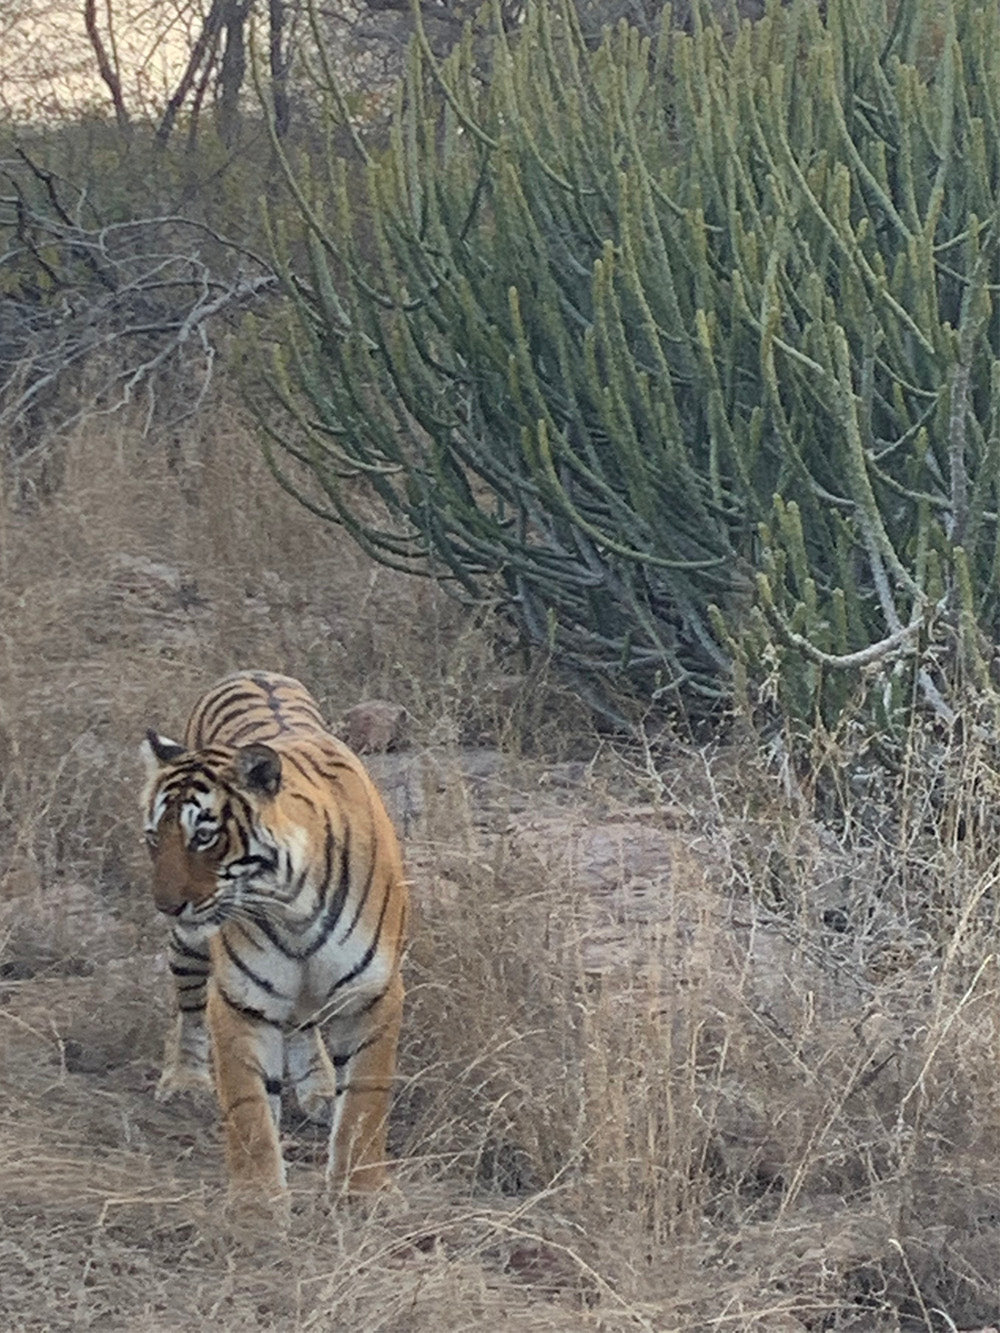 Tiger cub at Ranthambhore